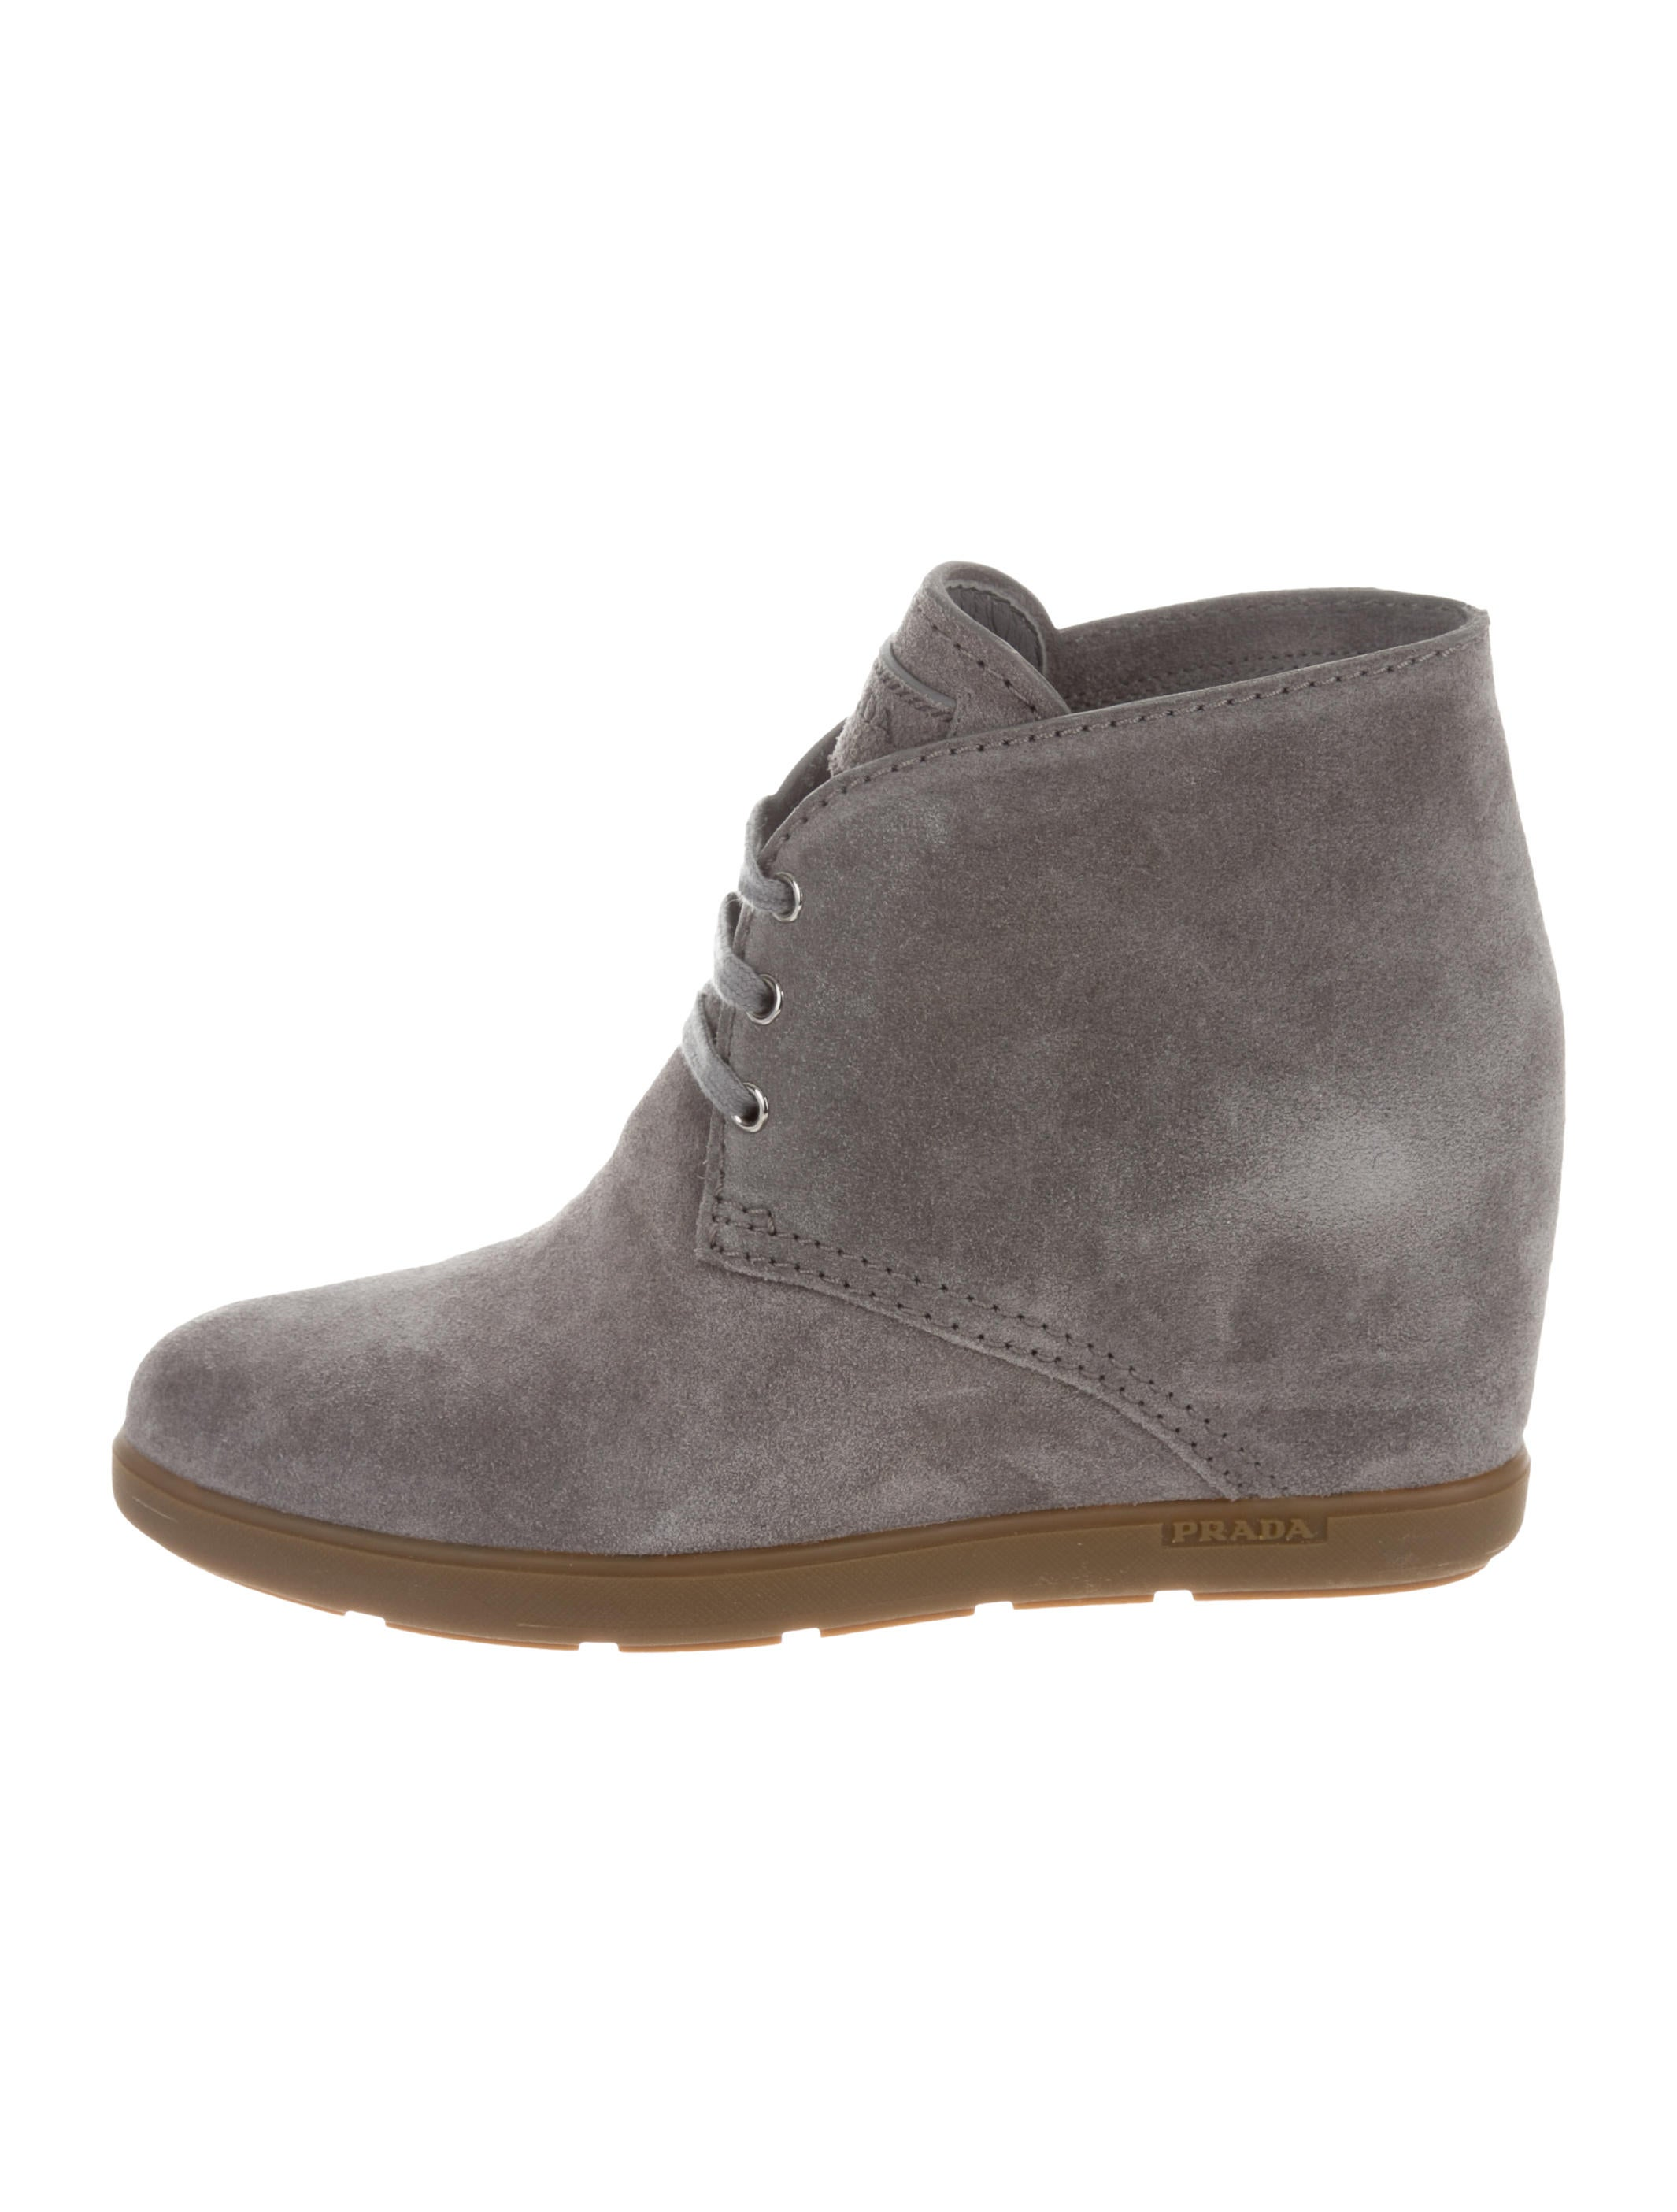 Prada Sport Round-Toe Wedge Booties outlet Manchester p9E0eV4